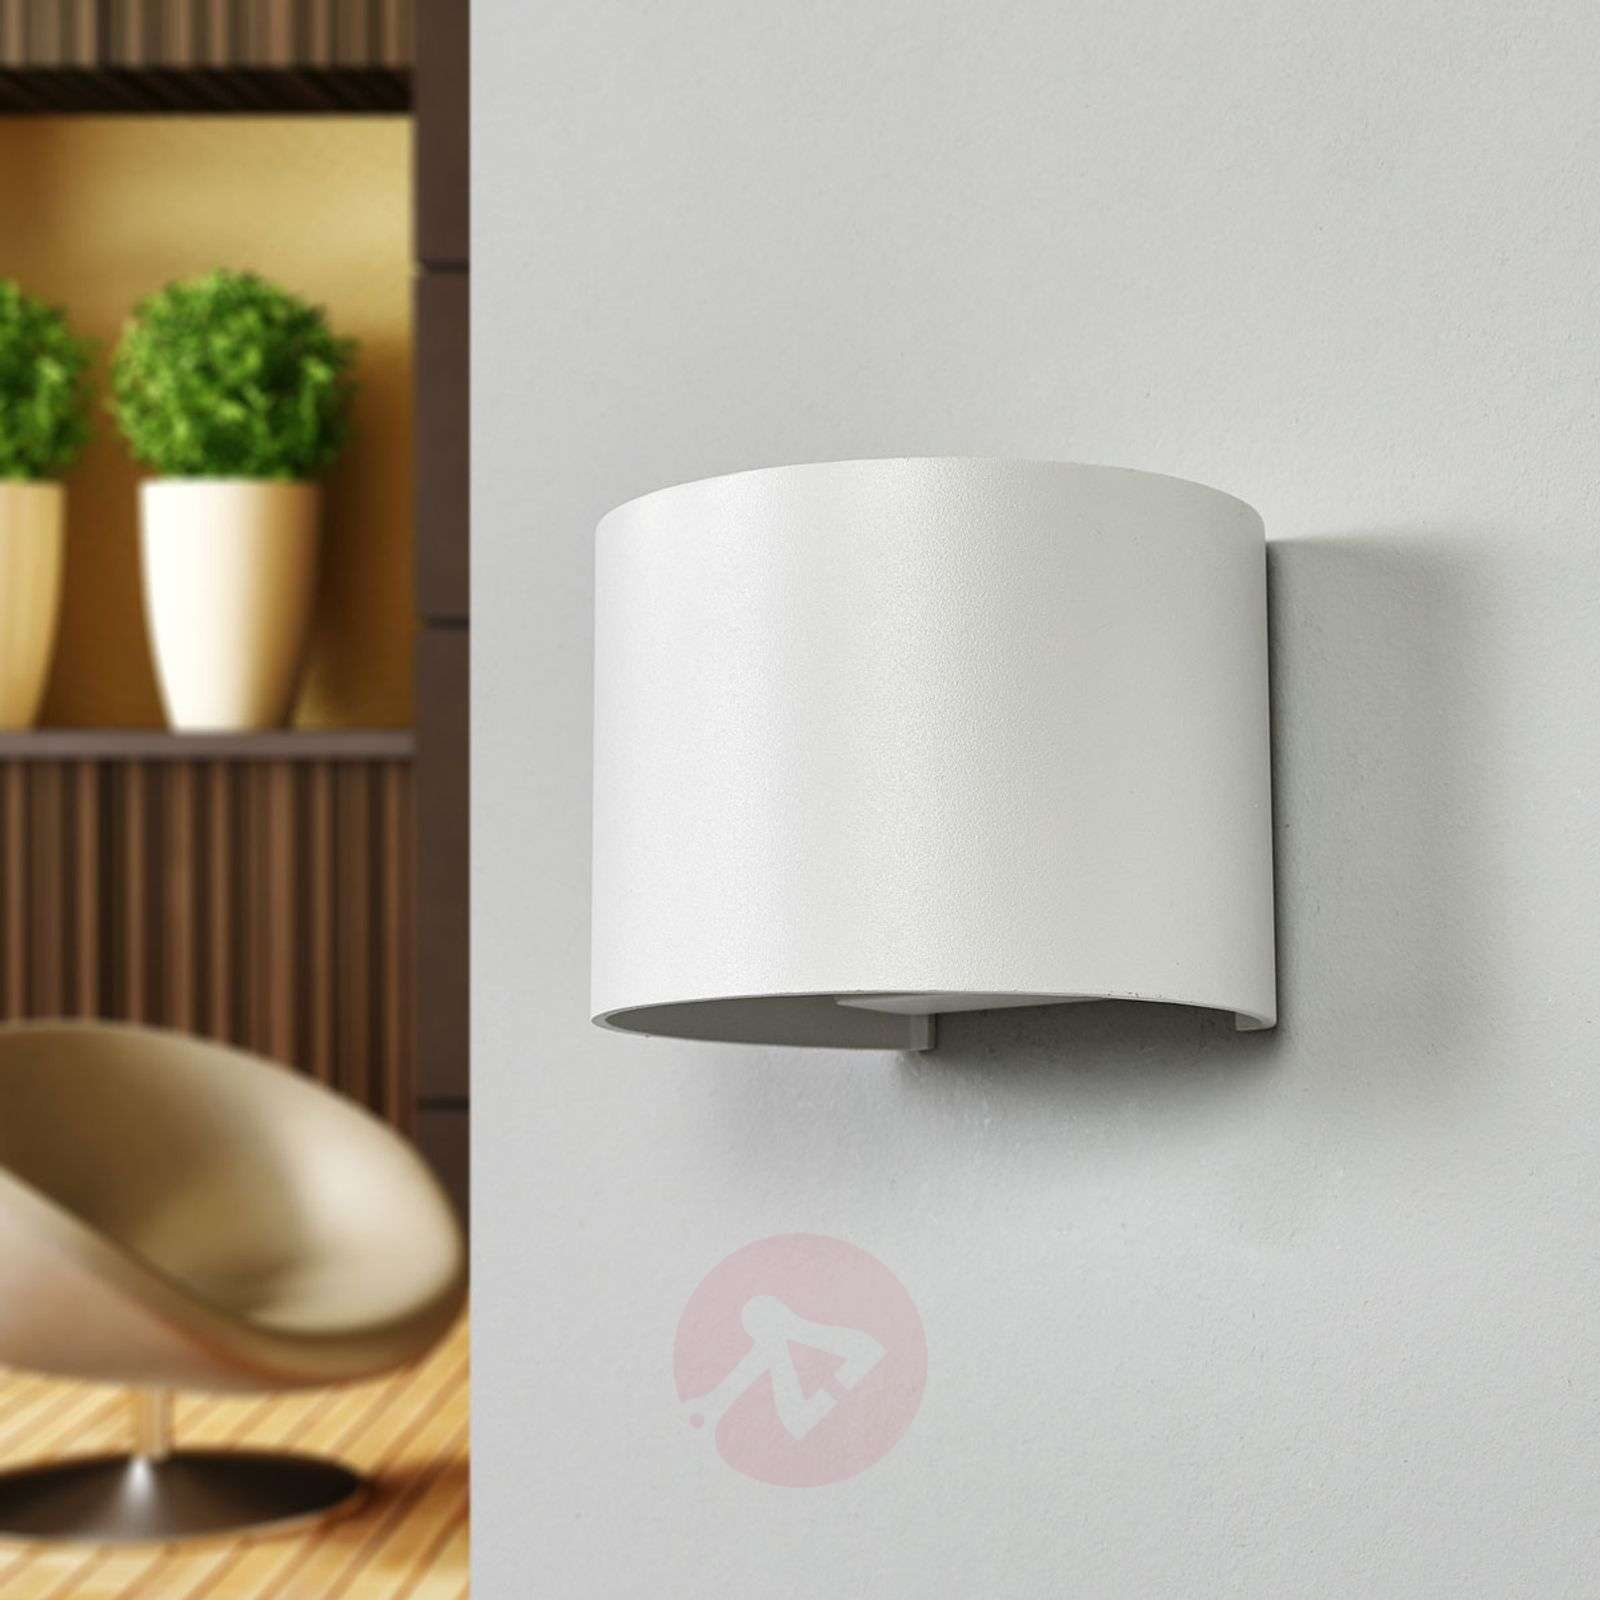 Xio LED wall light in white-6055296-011